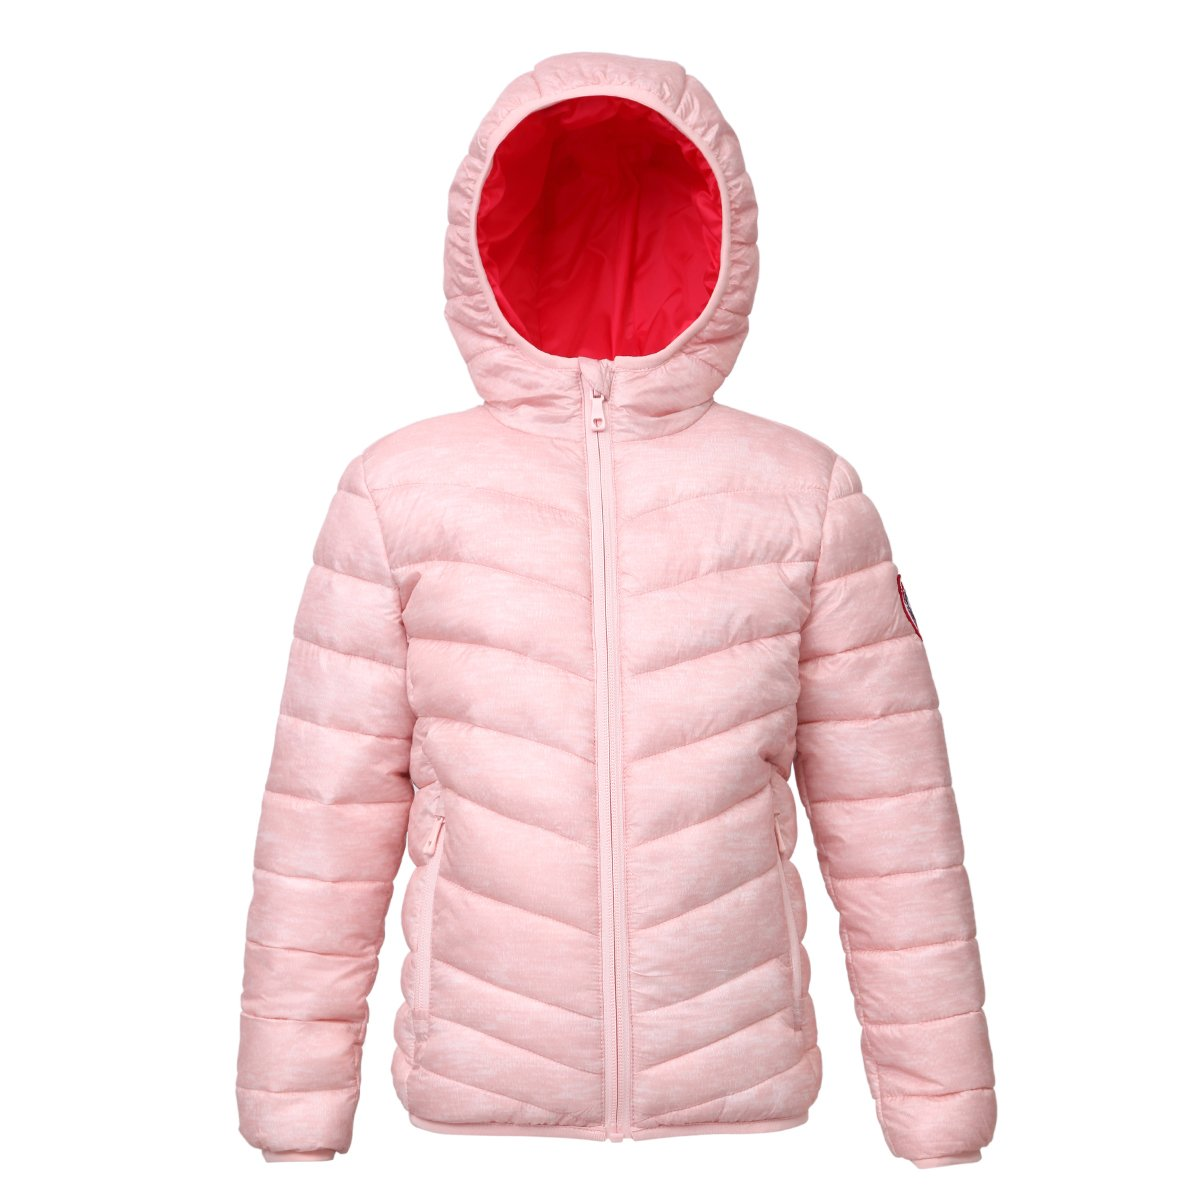 Rokka&Rolla Girls' Lightweight Reversible Water Resistant Hooded Quilted Poly Padded Puffer Jacket by Rokka&Rolla